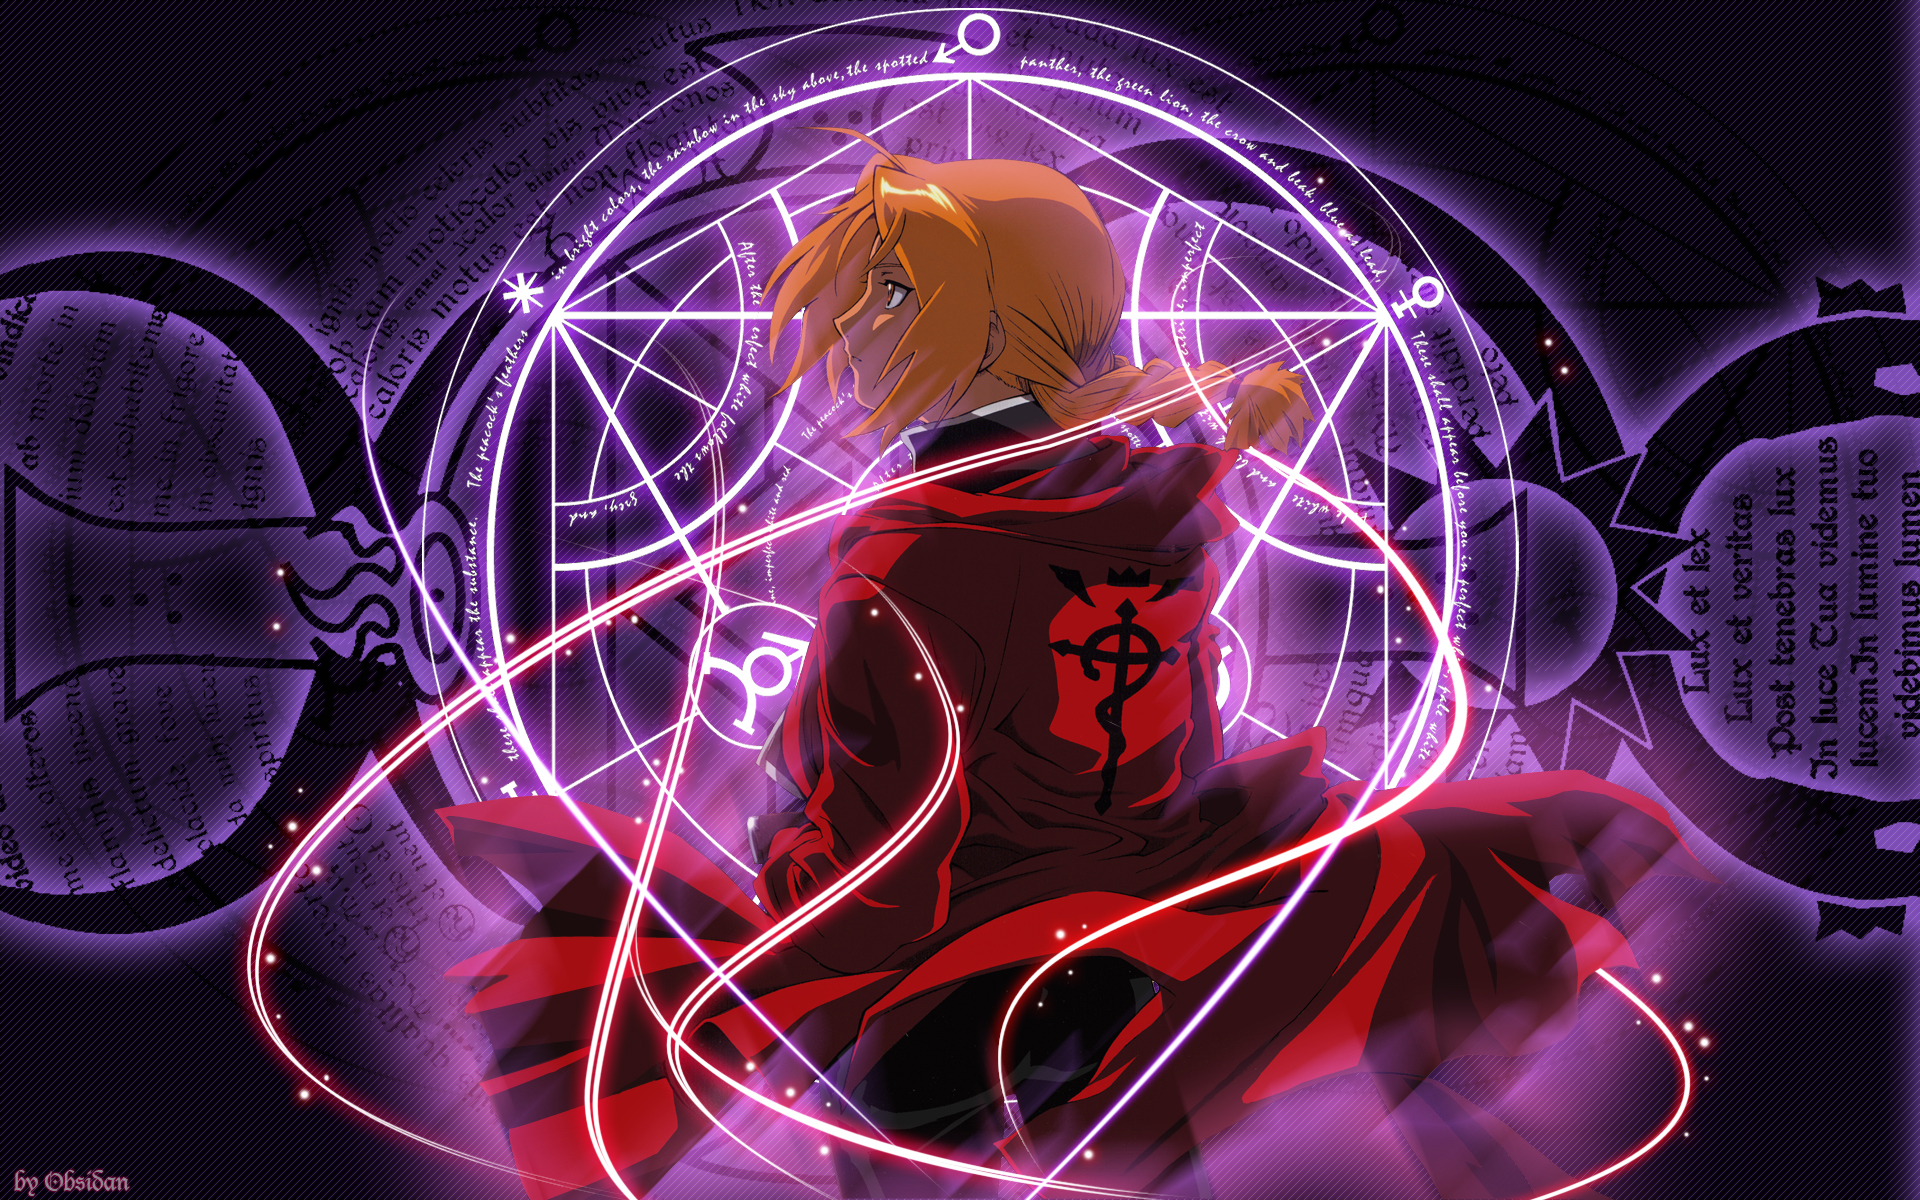 fileswordpresscom201109full metal alchemist wallpapers 299jpg 1920x1200